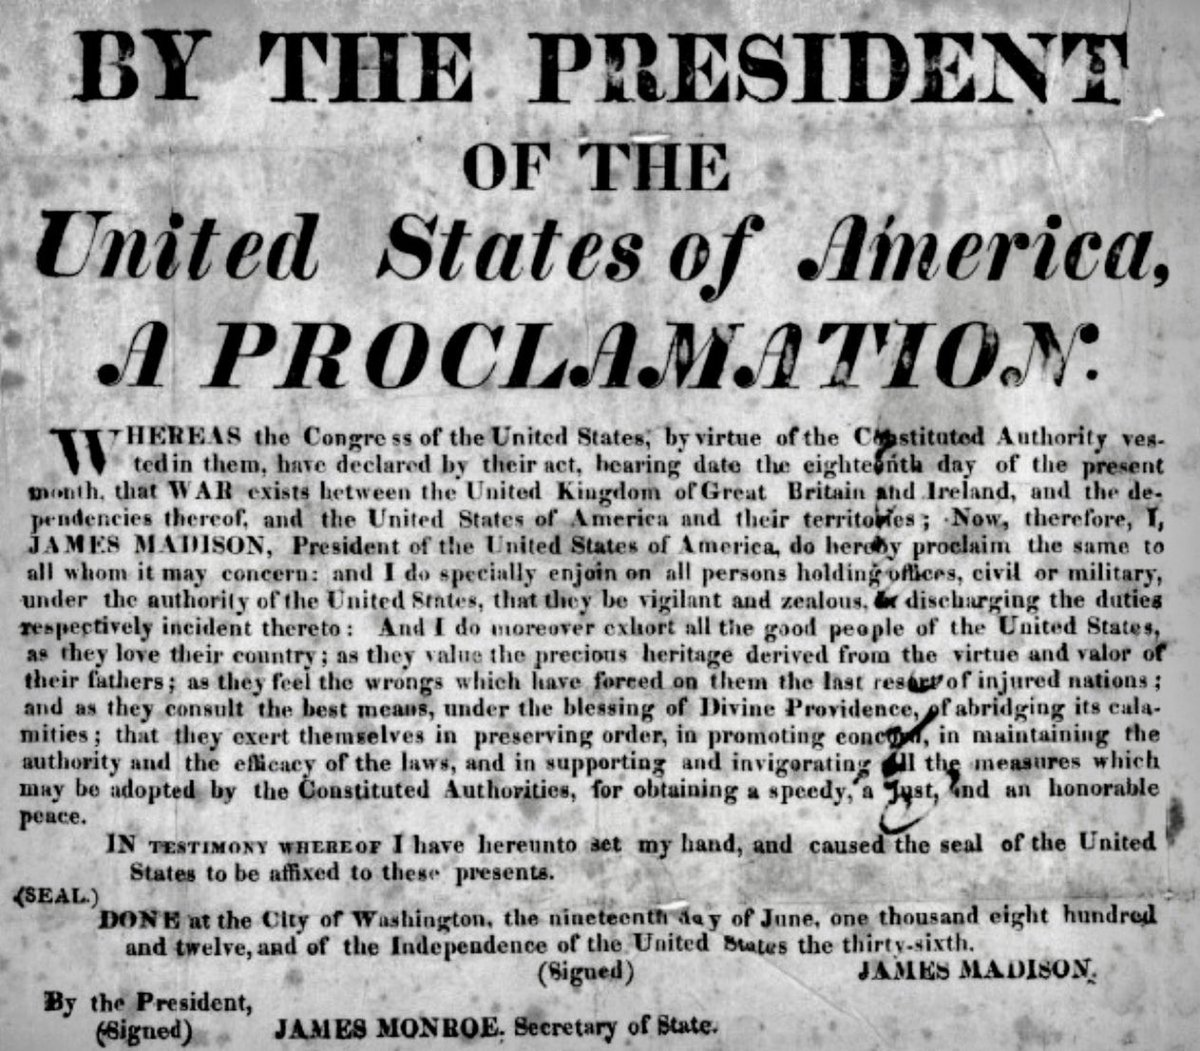 President Madison signed war declaration against Great Britain today 1812: https://t.co/imILHFAKWg